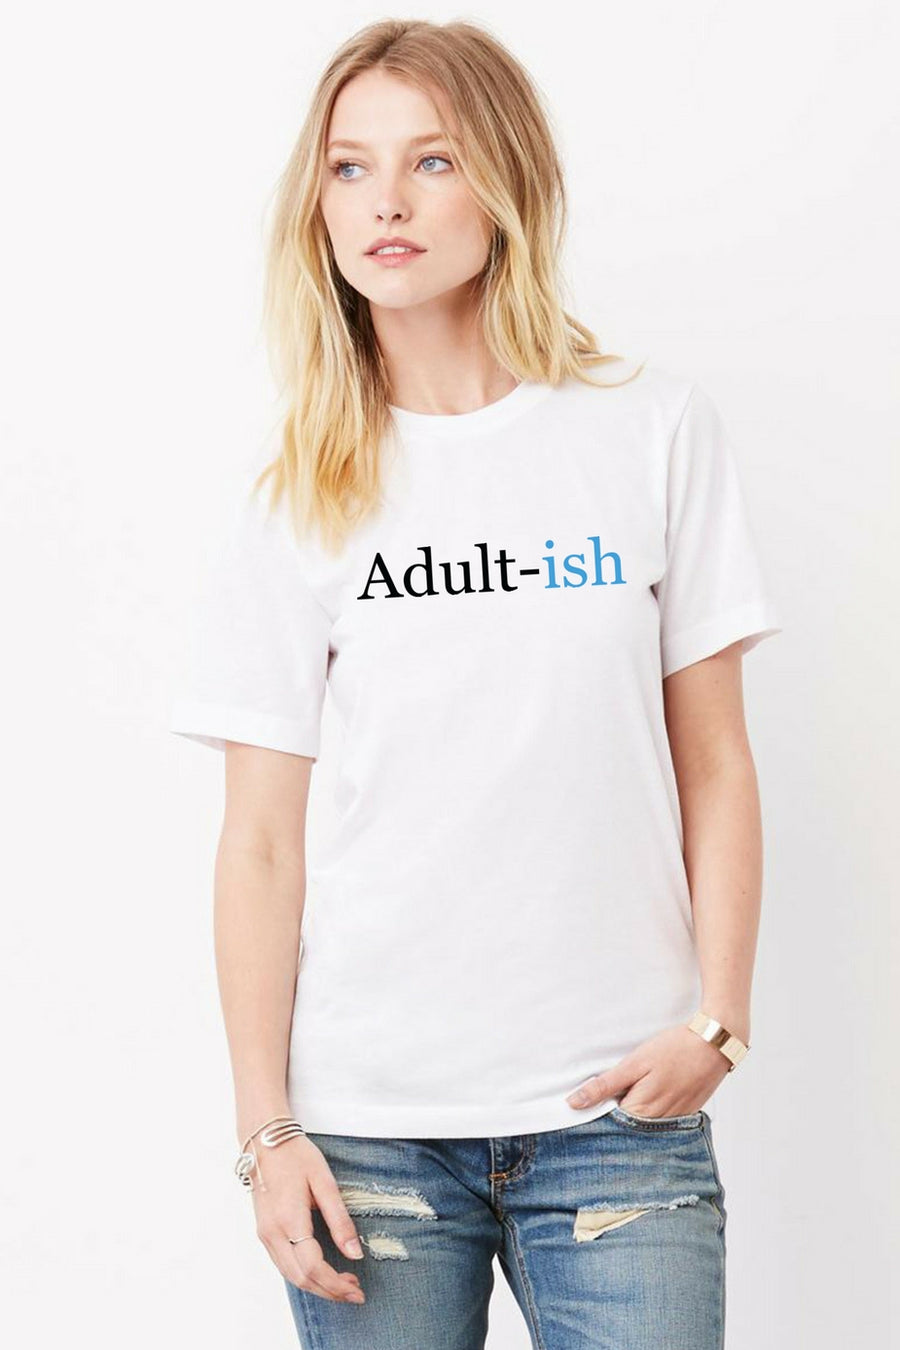 Six + Row Adultish White Tee